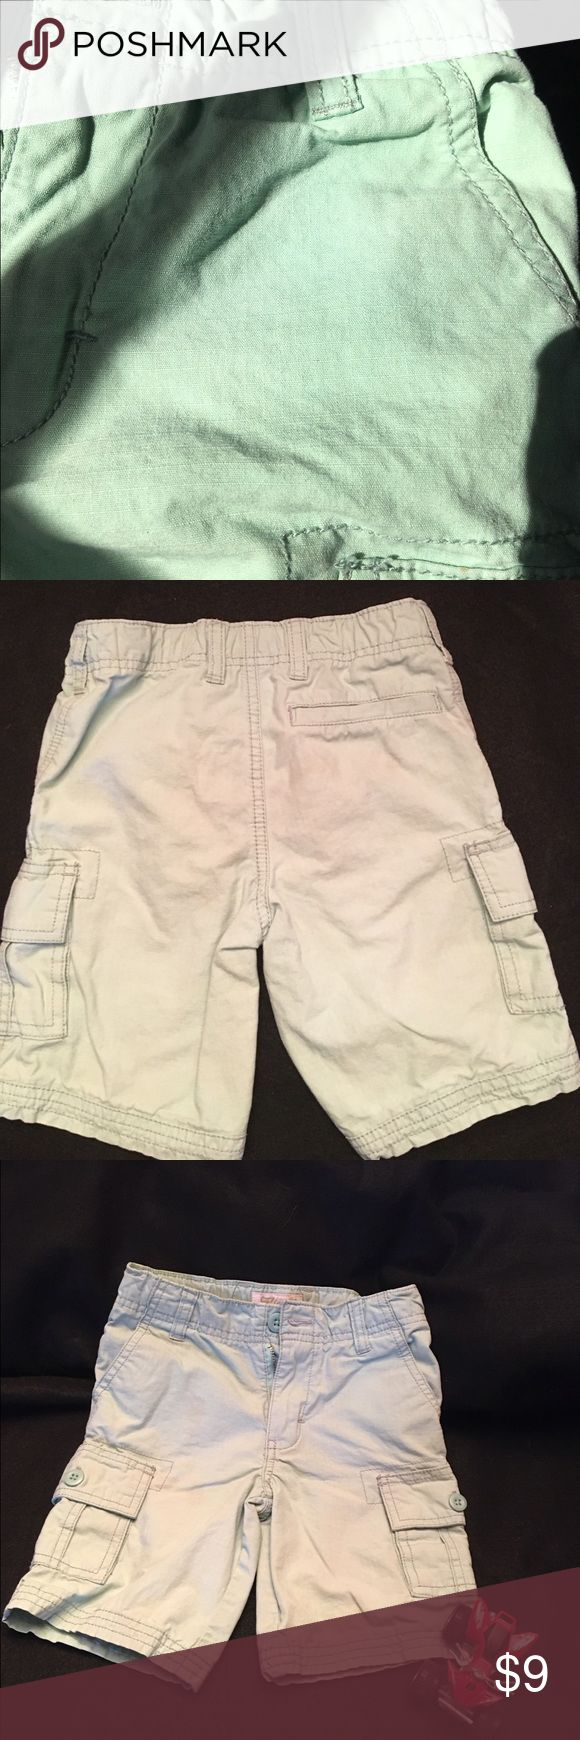 Mint green shorts Super cute!  Cargo shorts! Surf Legend line of Carters cargo shorts.  Mint green color-see the photo with natural lighting, looks grey in the other 2 shots. Carter's Bottoms Shorts